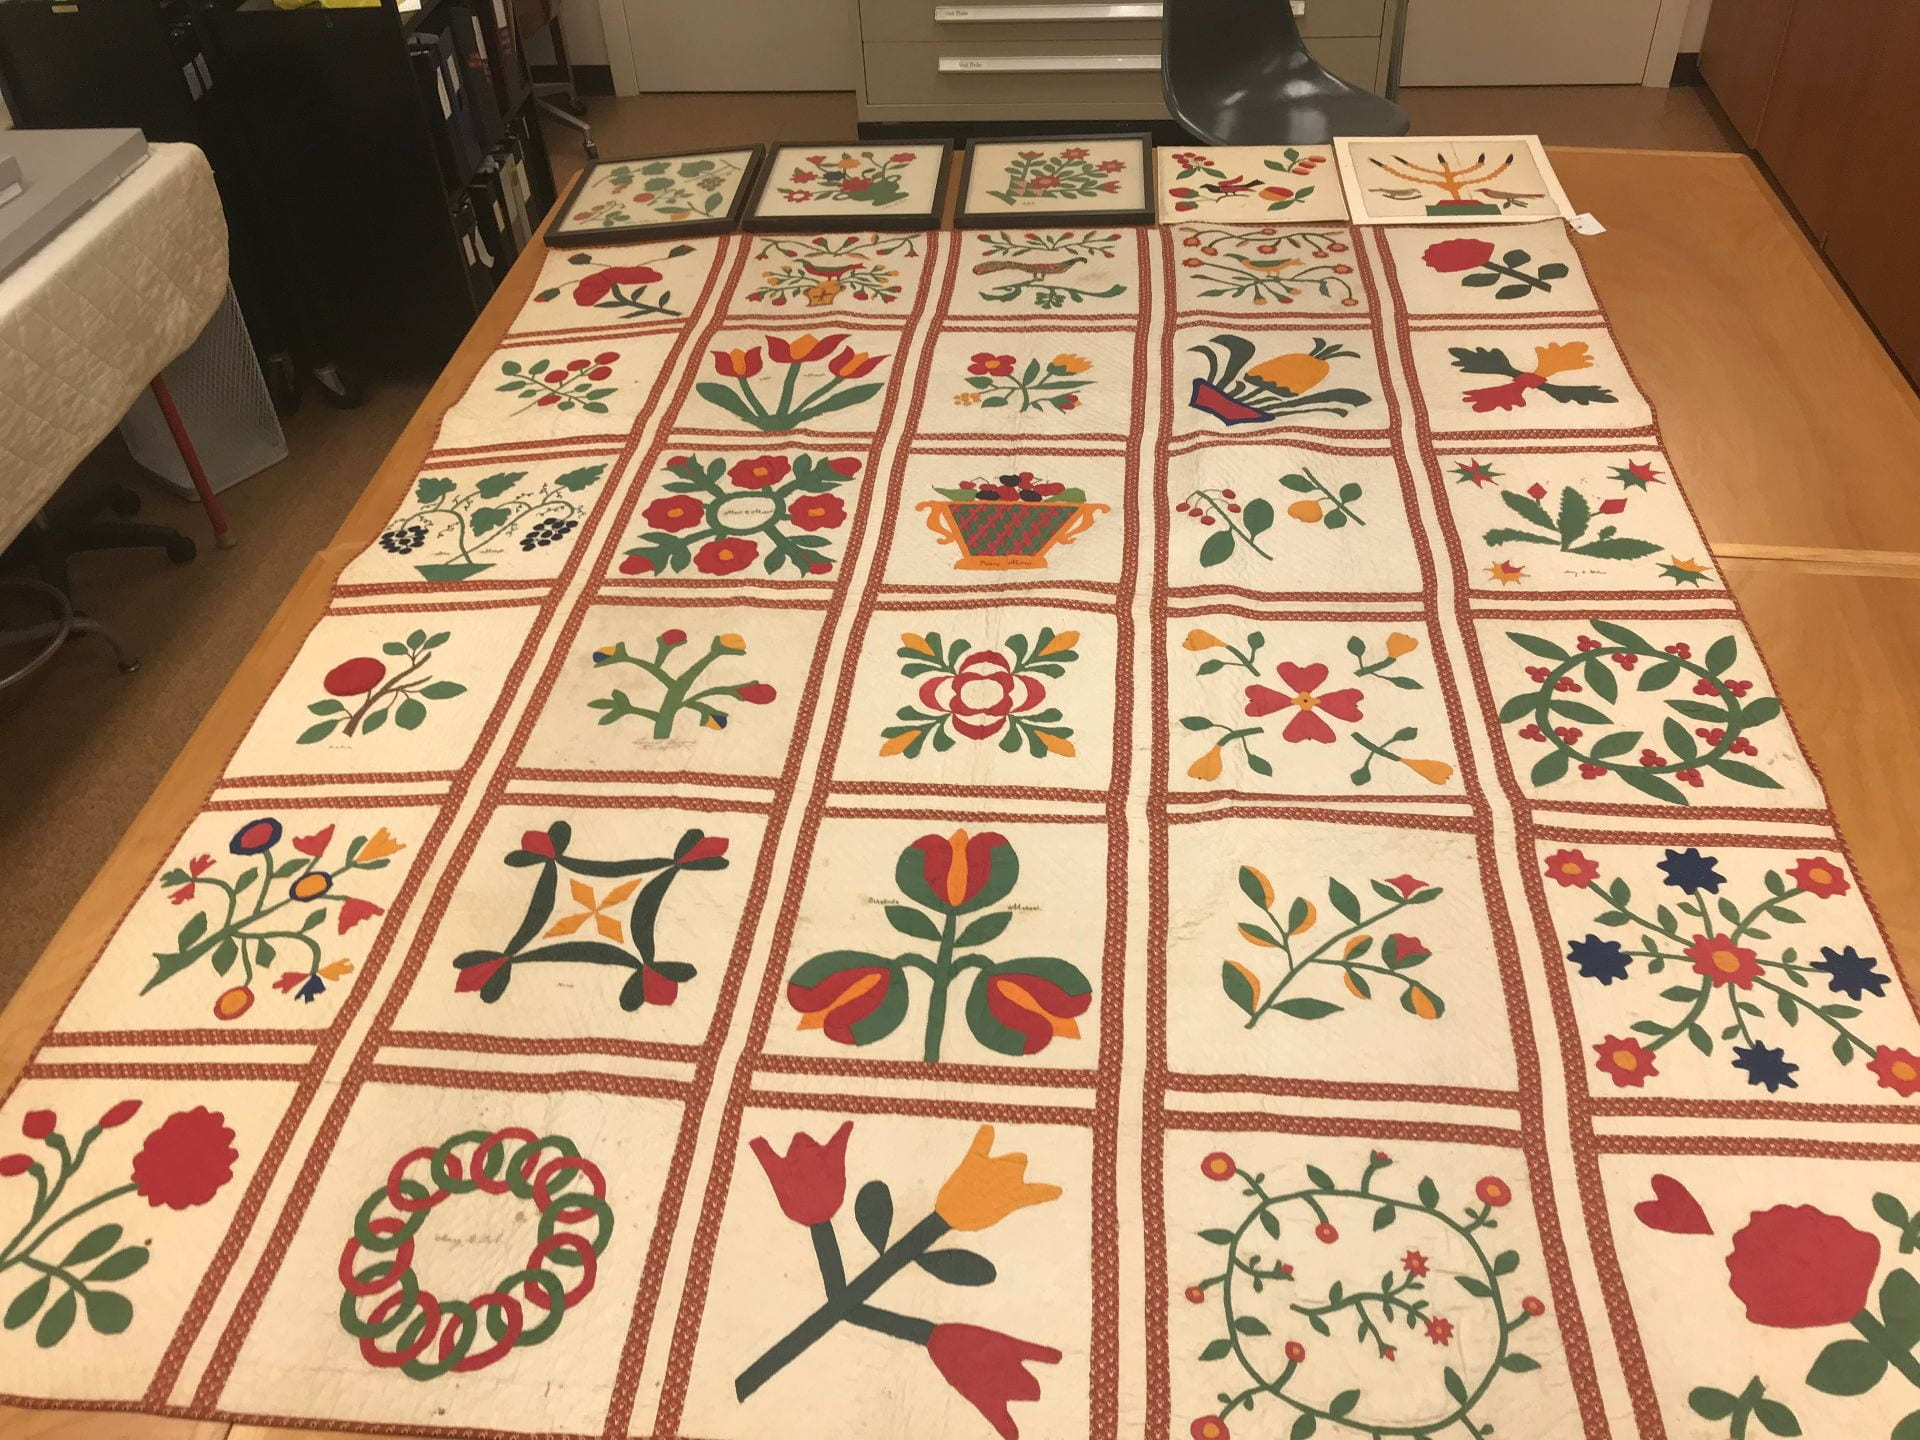 A row of separate, framed red and green quilt blocks line up neatly with the edge of a large red and green finished quilt.